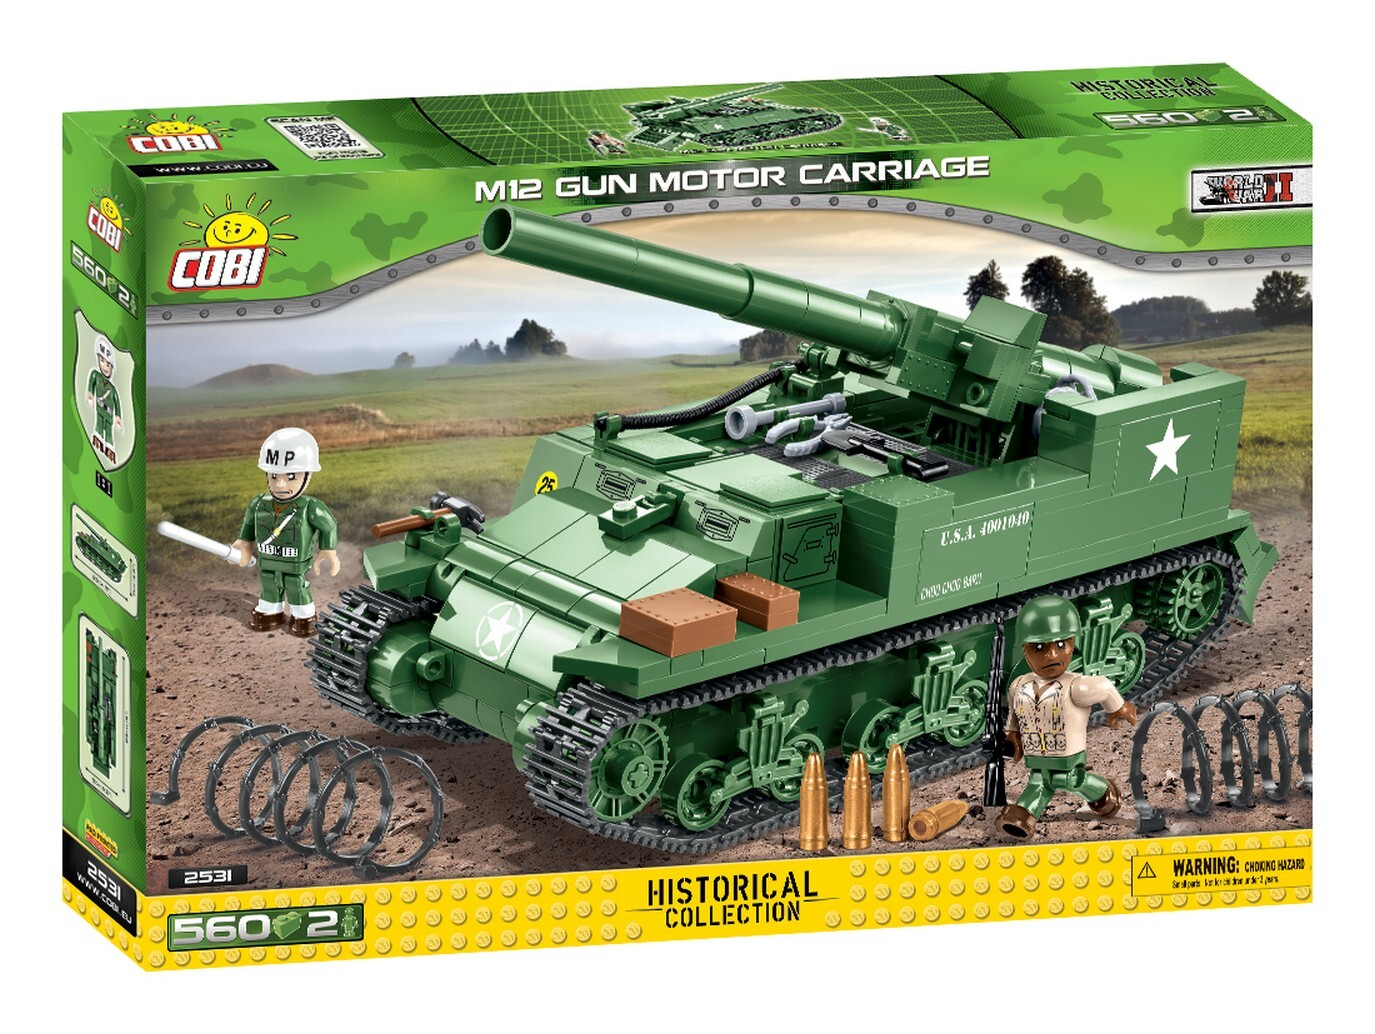 COBI #2531  M12 155mm自走カノン砲(M12 Gun Motor Carriage)